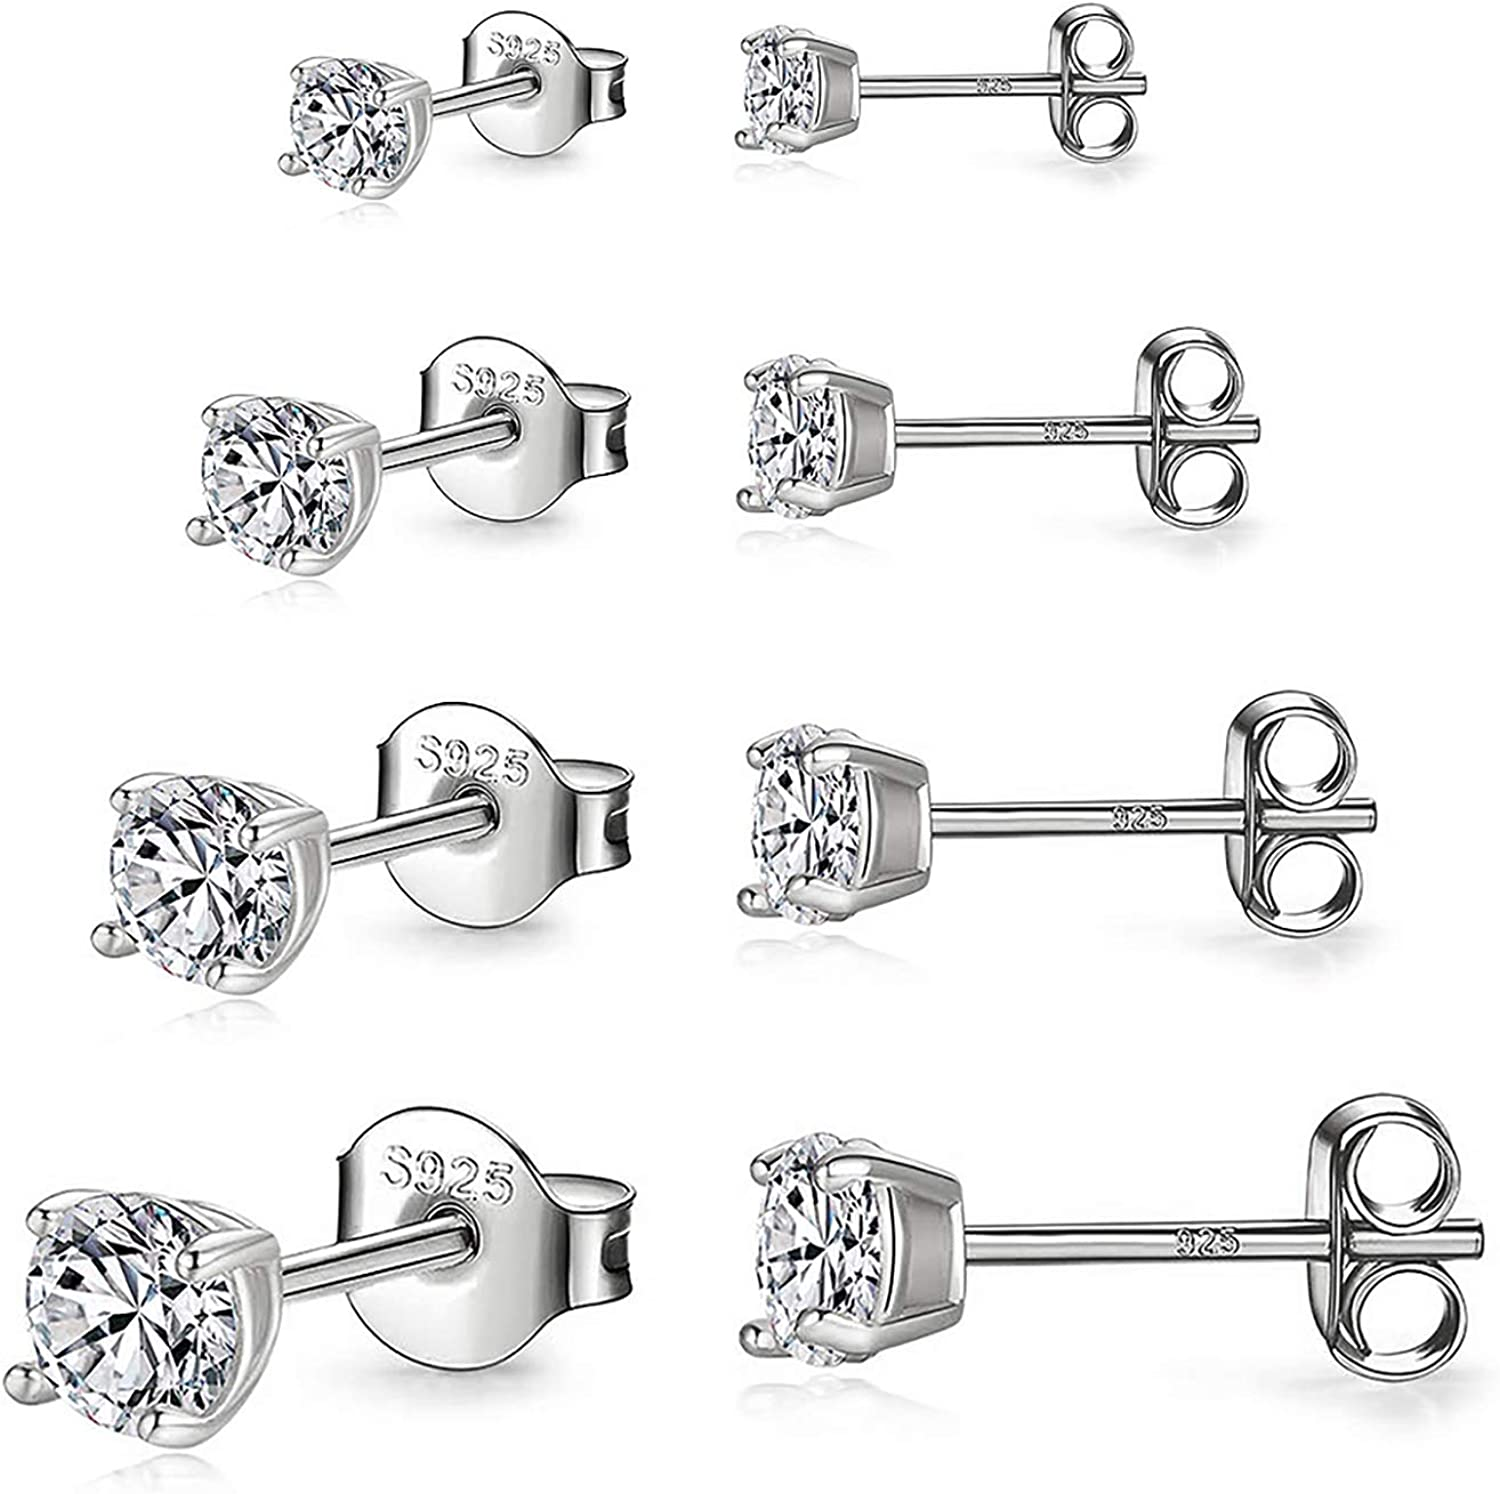 925 Choice Sterling Silver Stud Max 77% OFF earrings White Gold Hypoal Plated Set